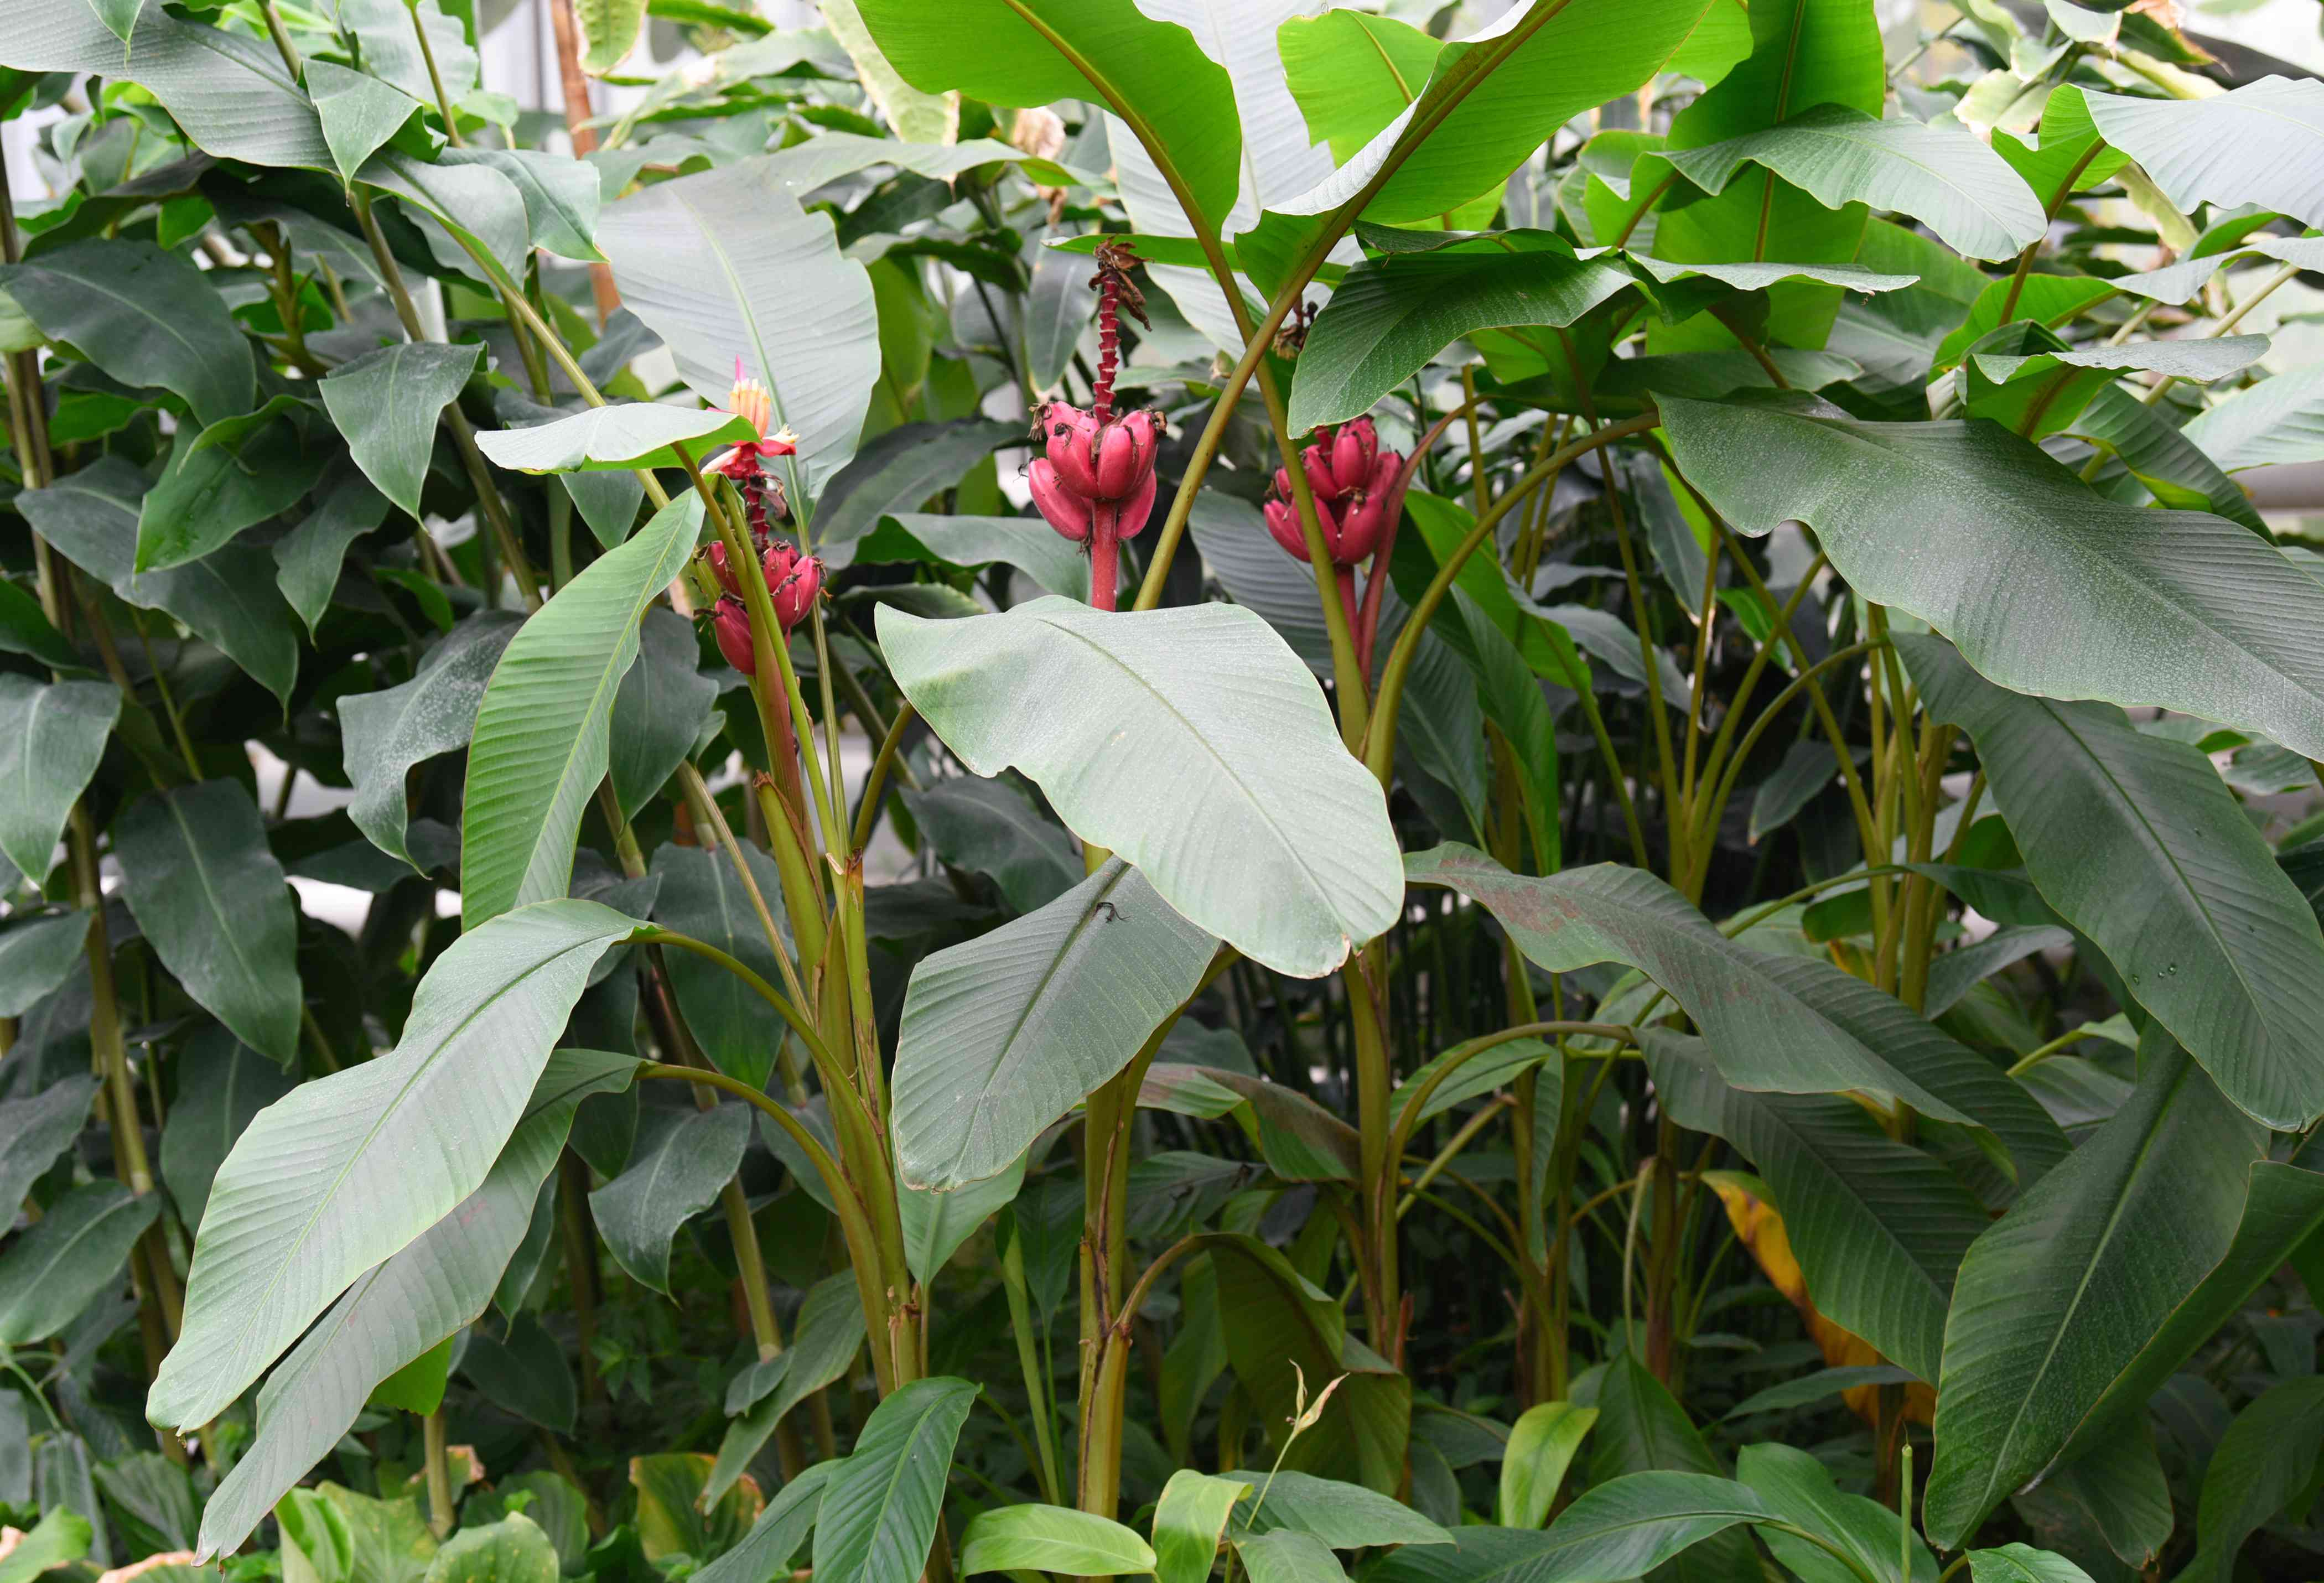 Velvet banana trees with tall thick stems and large oval leaves with pink banana fruit hanging